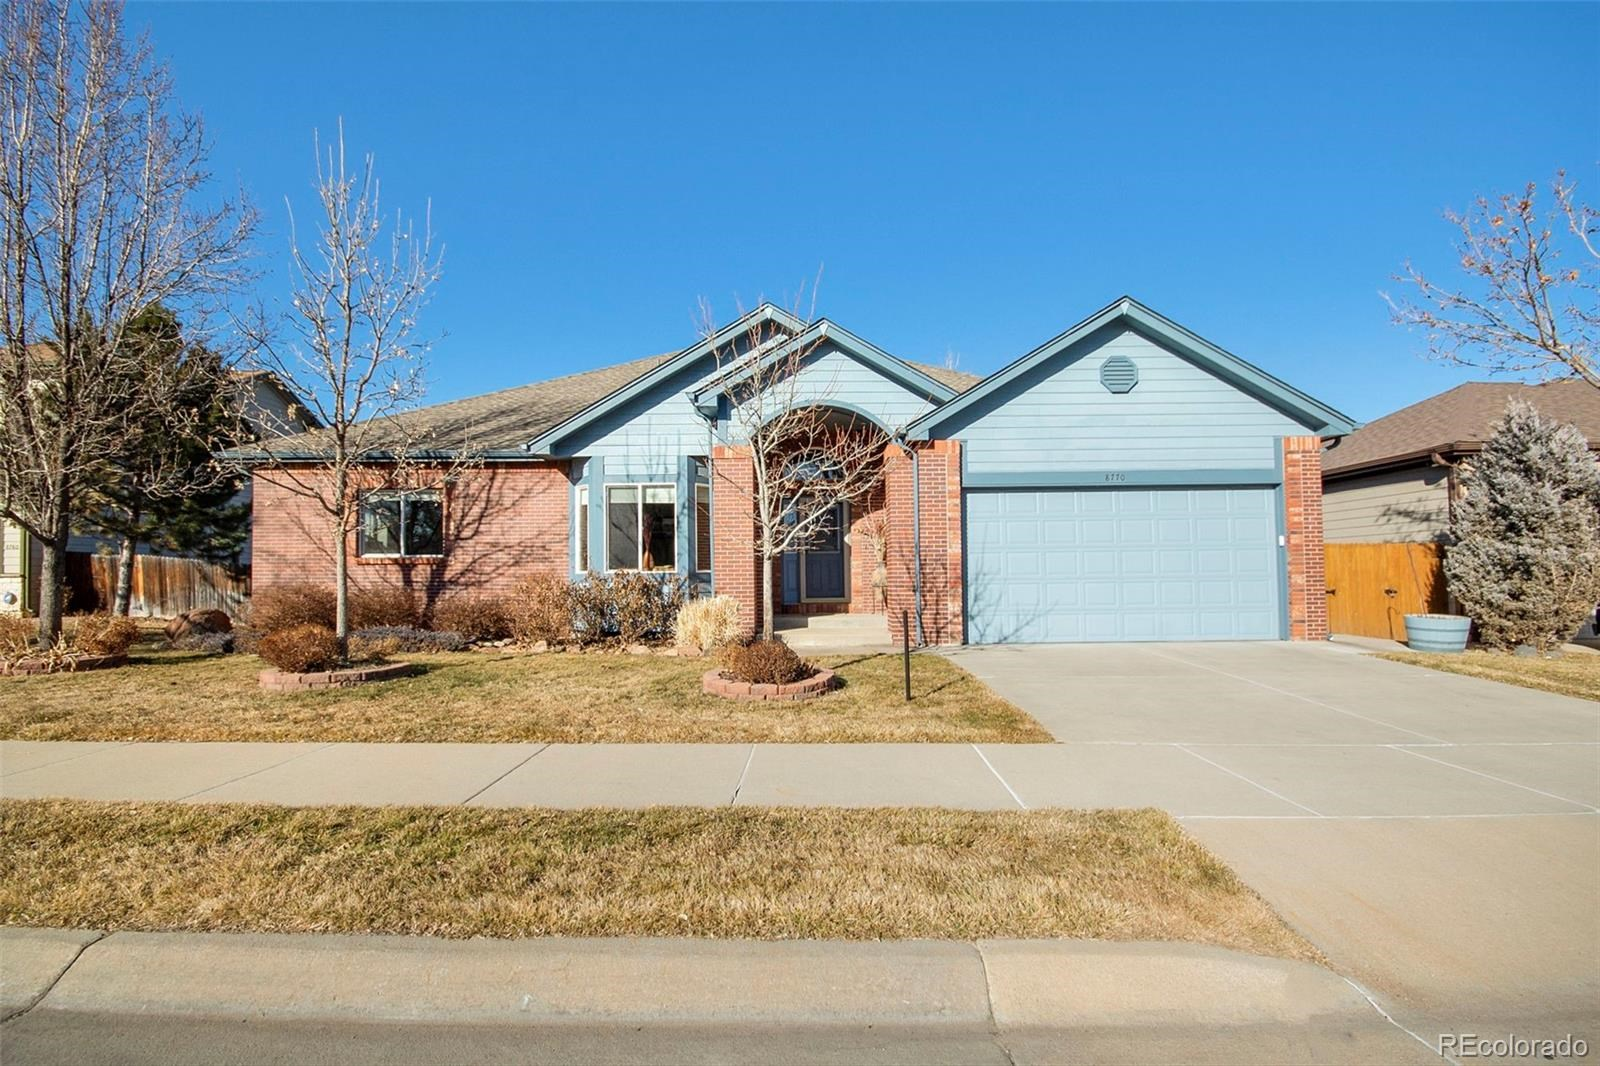 MLS# 5568243 - 2 - 8770 W 49th Circle, Arvada, CO 80002